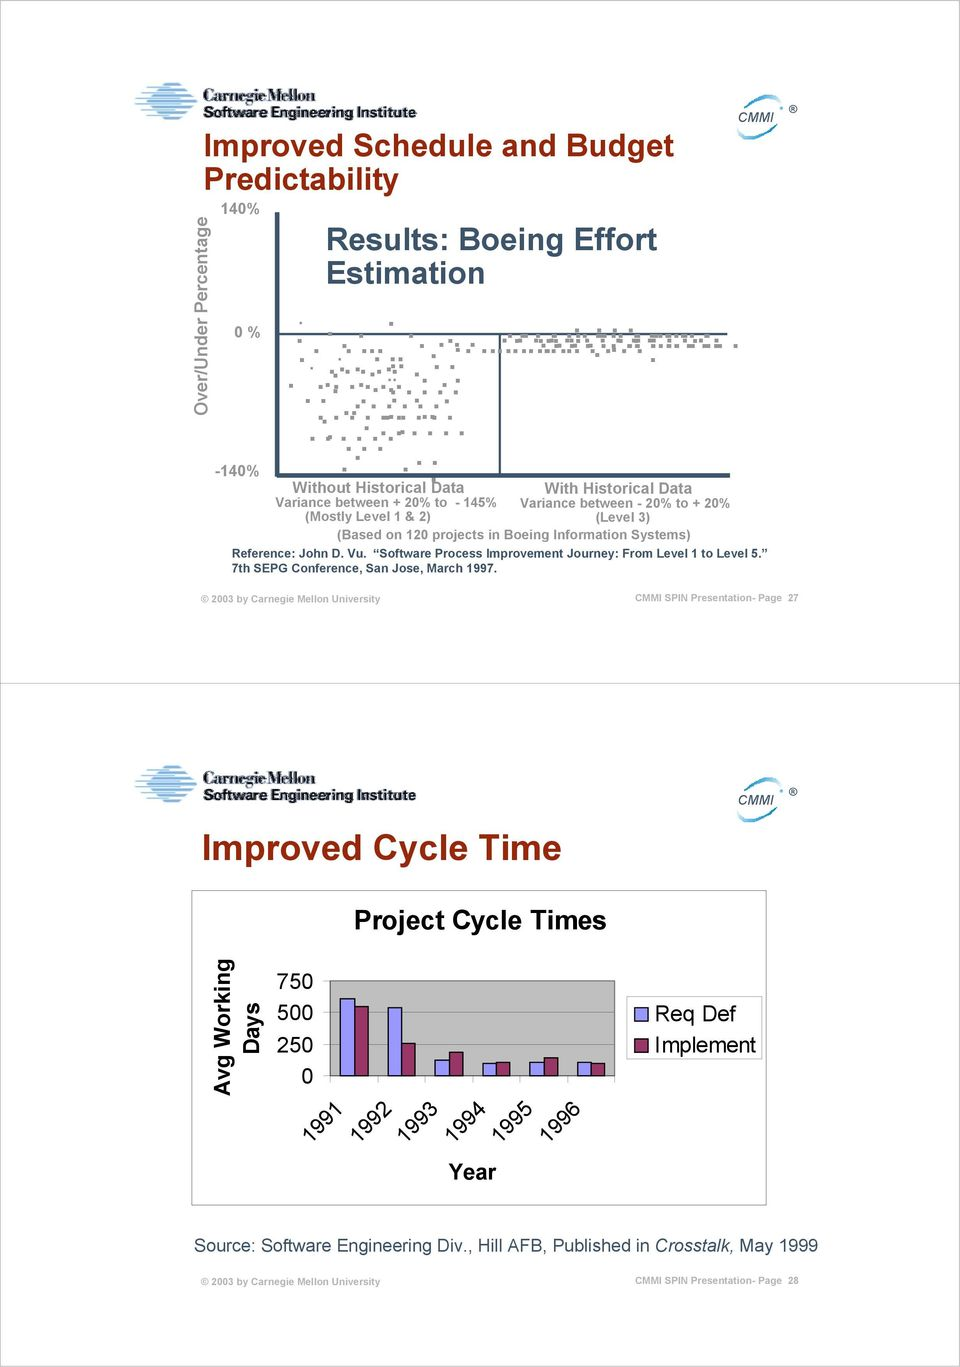 20% to + 20% (Mostly Level 1 & 2) (Level 3) (Based on 120 projects in Boeing Information Systems) Reference: John D. Vu. Software Process Improvement Journey: From Level 1 to Level 5.